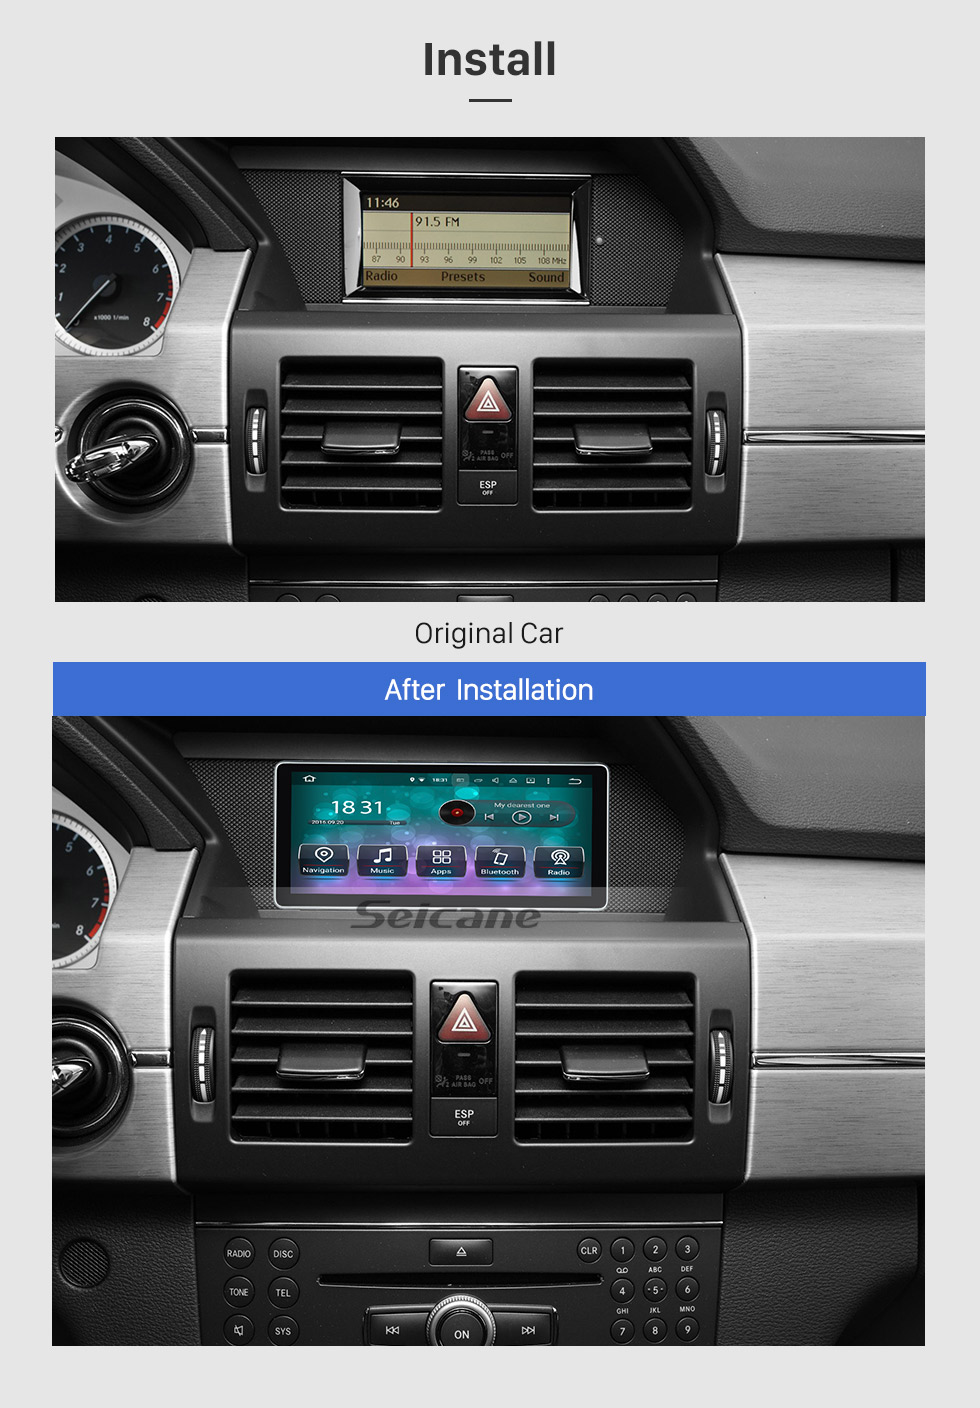 Seicane 10.25 inch 1280*480 Touchscreen Radio Android 8.0 Car Stereo for 2008-2015 Mercedes Benz GLK Class X204 GLK200 GLK250 Bluetooth WIFI GPS Navigation 1080P Video Player SWC support DVR Rearview Camera